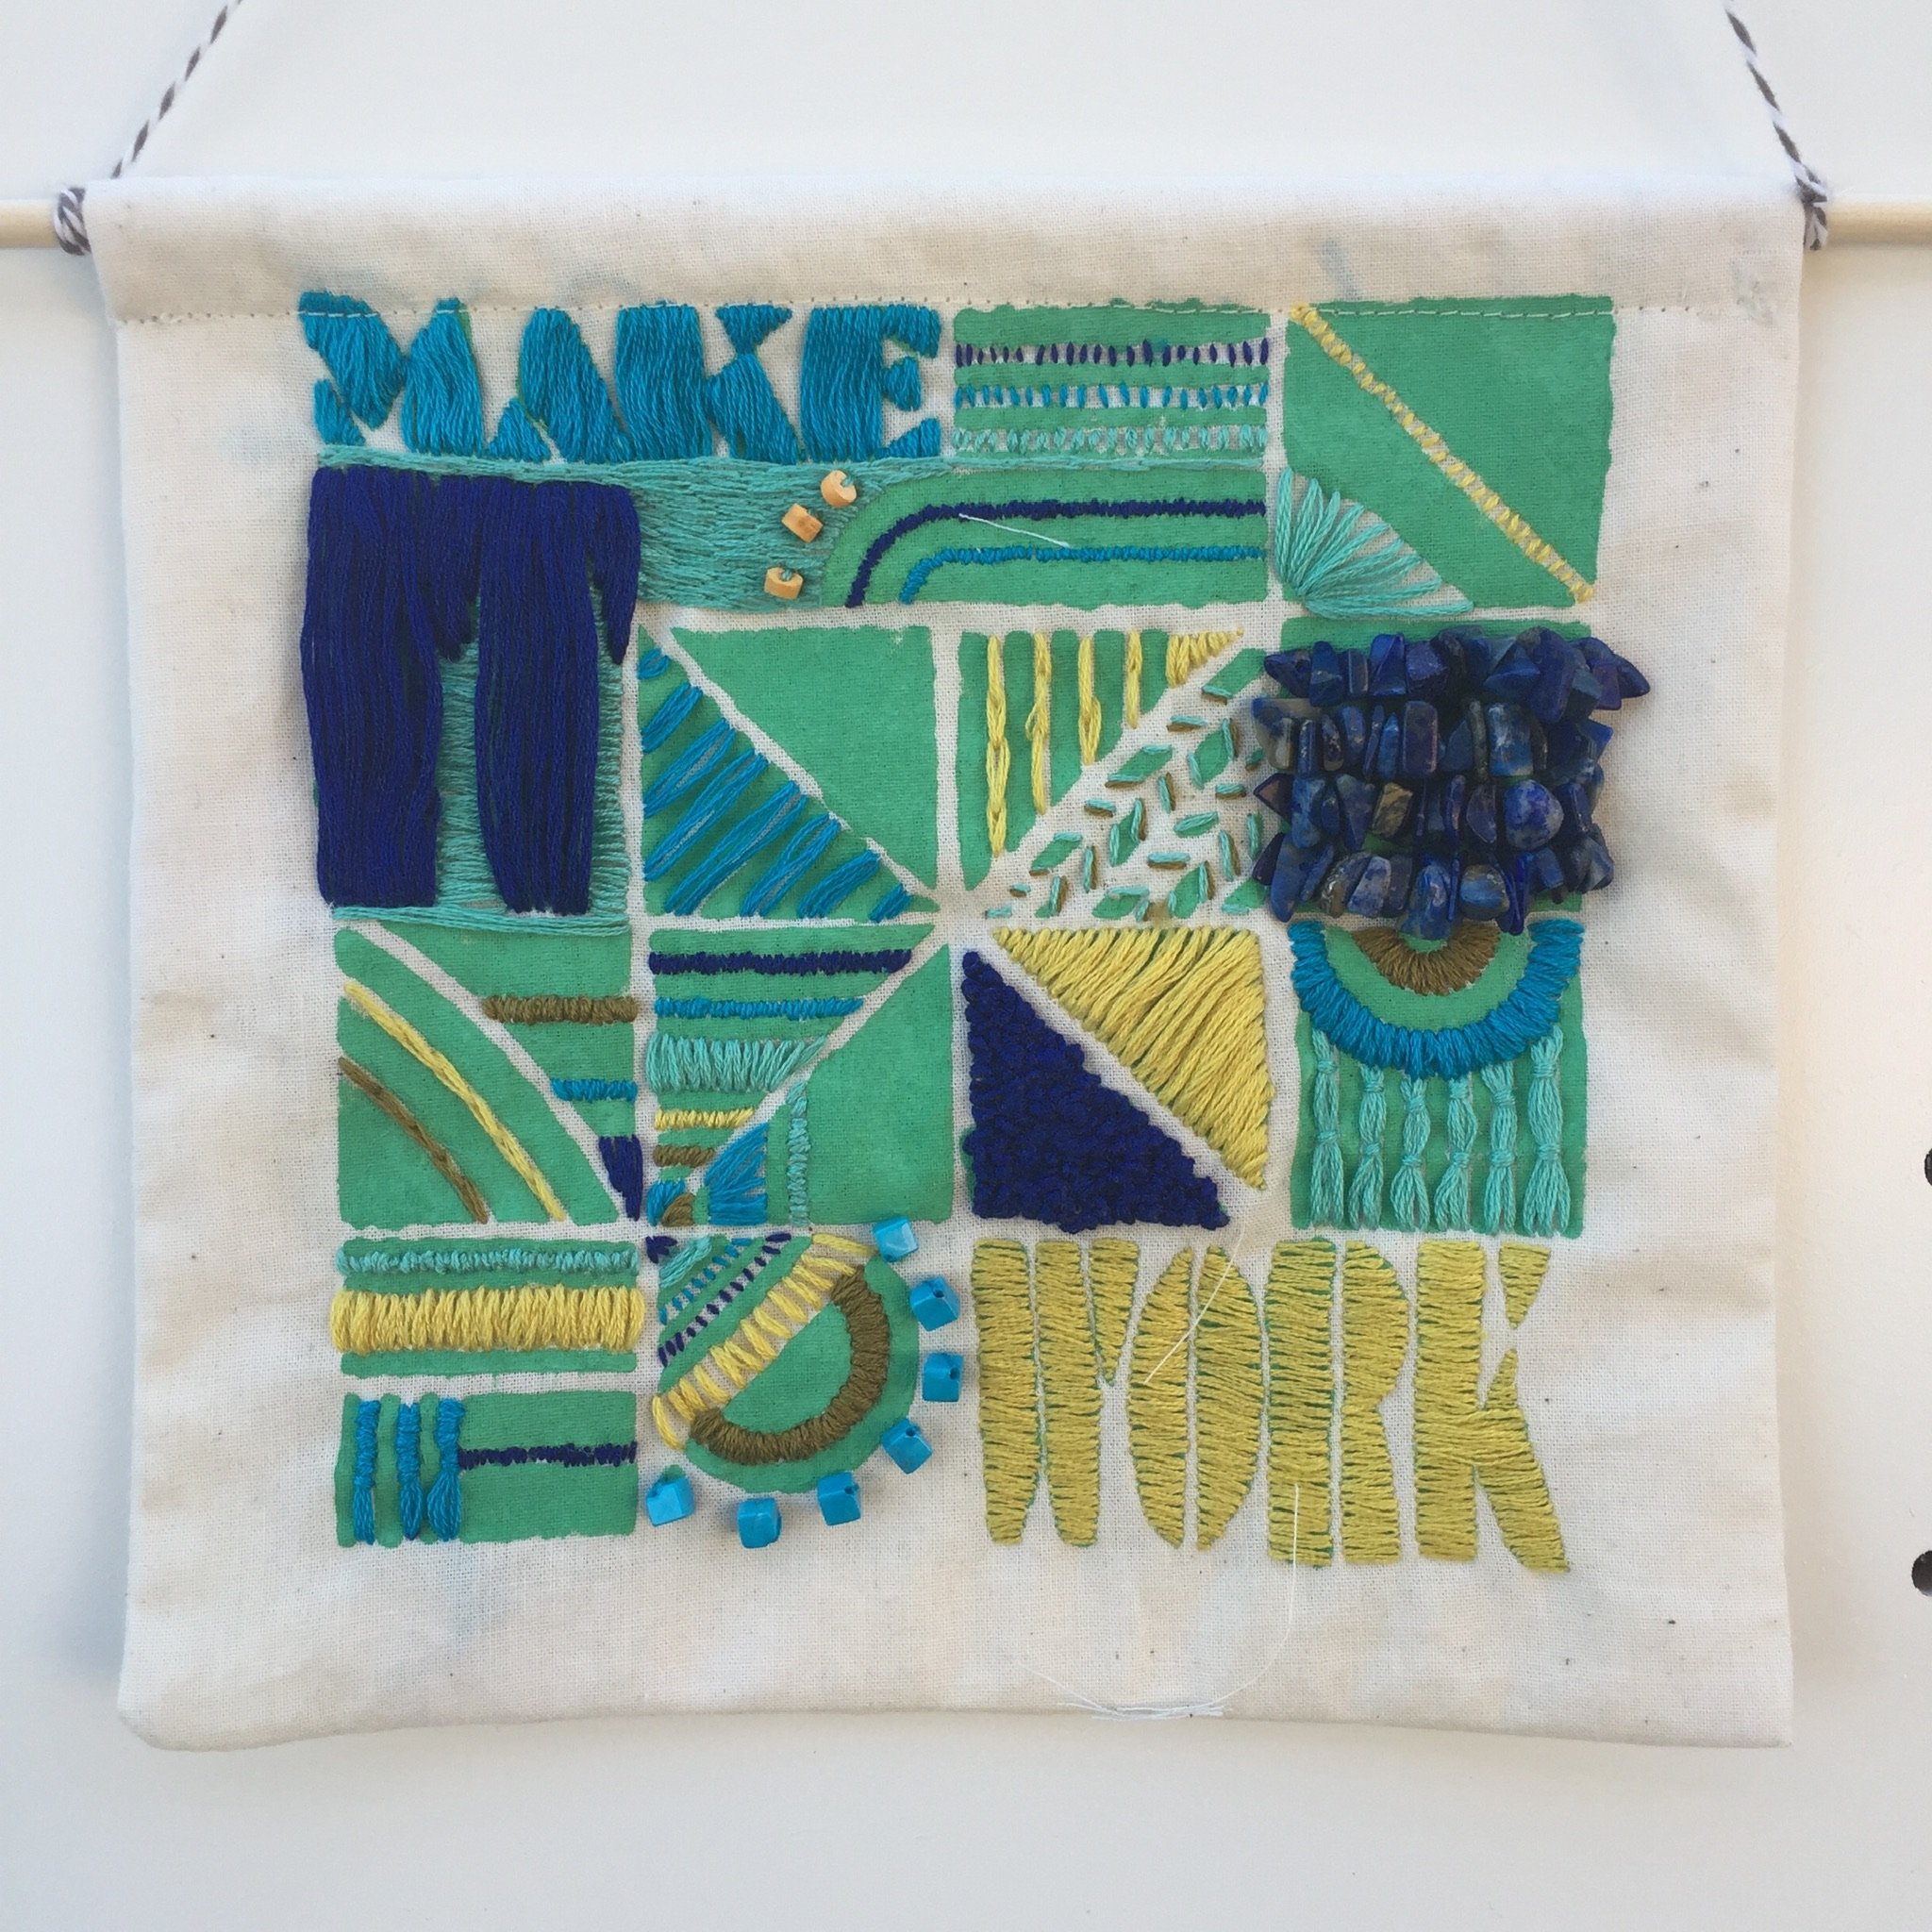 Make It Work embroidered wall hanging. Available for purchase in my shop.